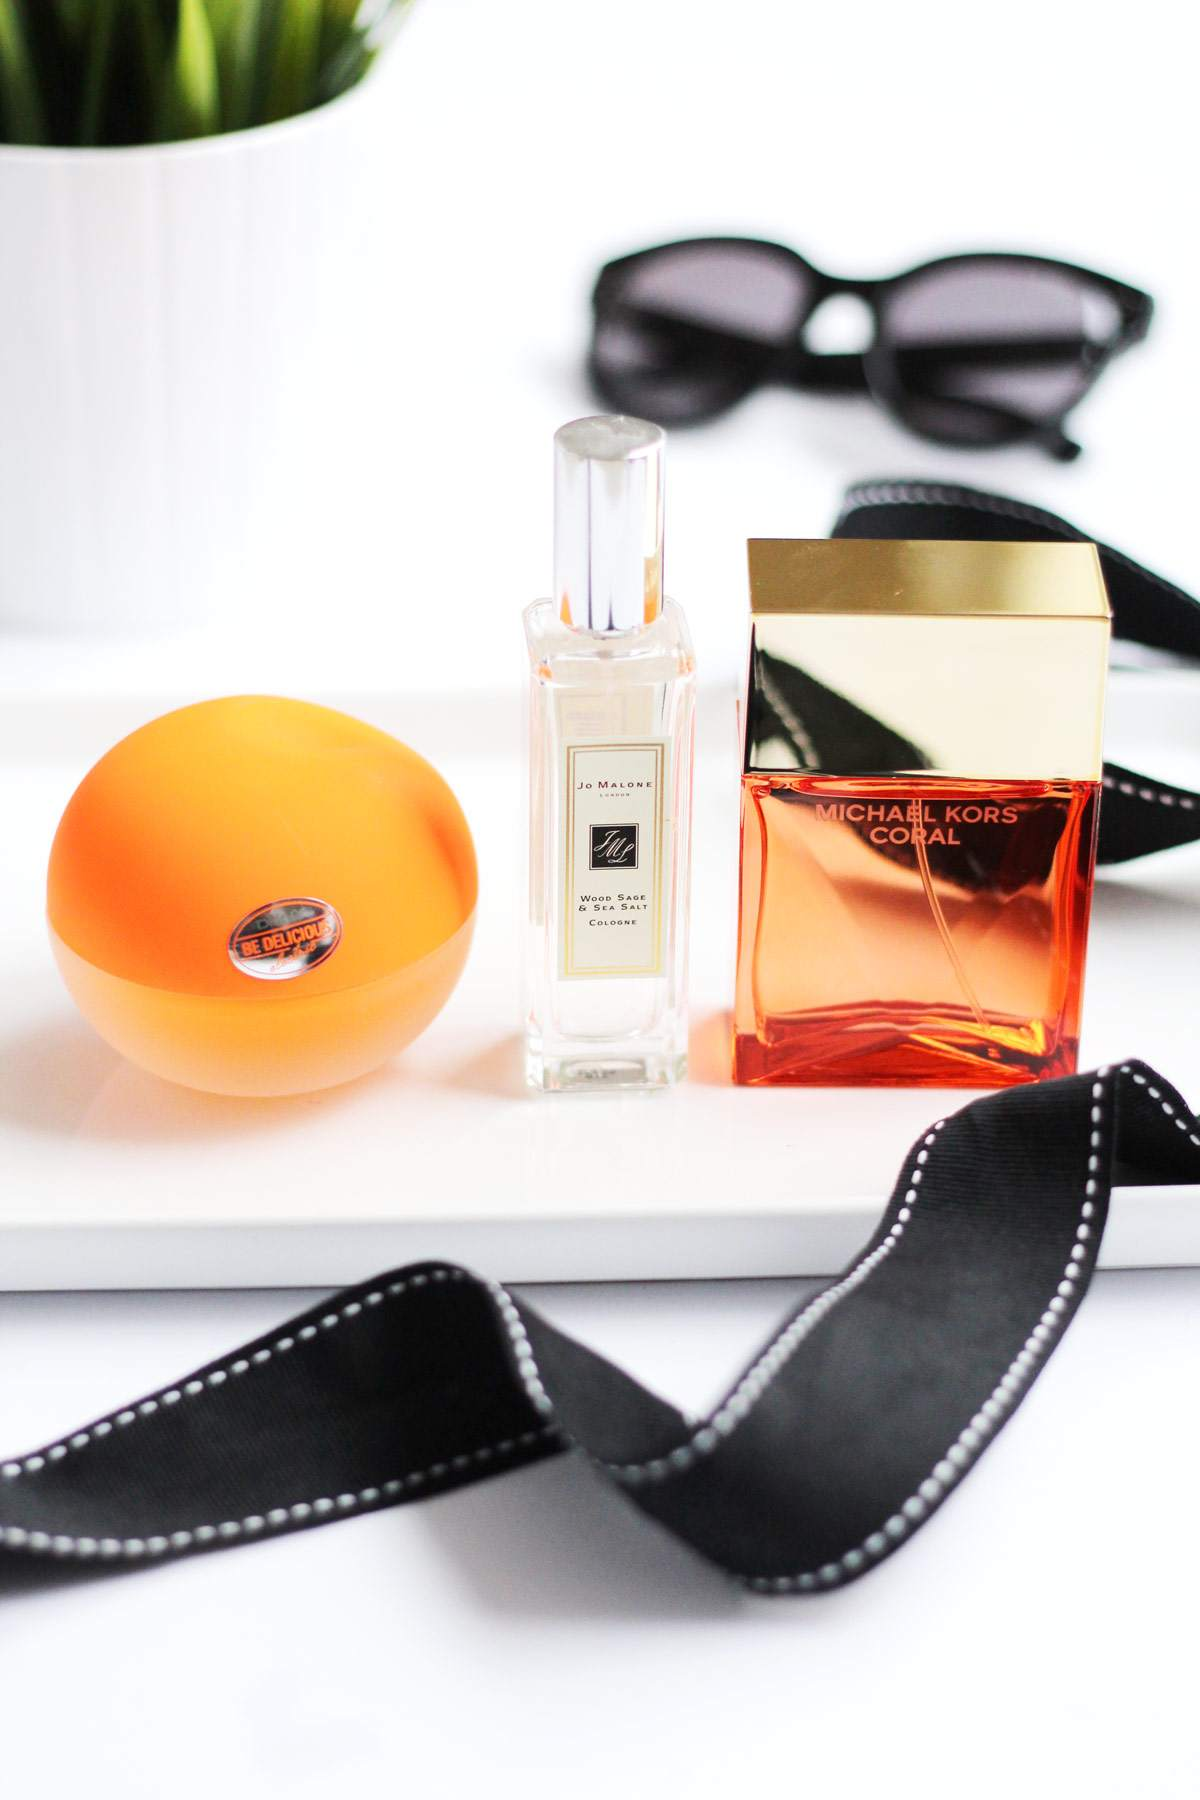 spring-perfume-michael-kors-coral-DNKY-be-delicious-electric-orange-jo-malone-wood-sage-sea-salt